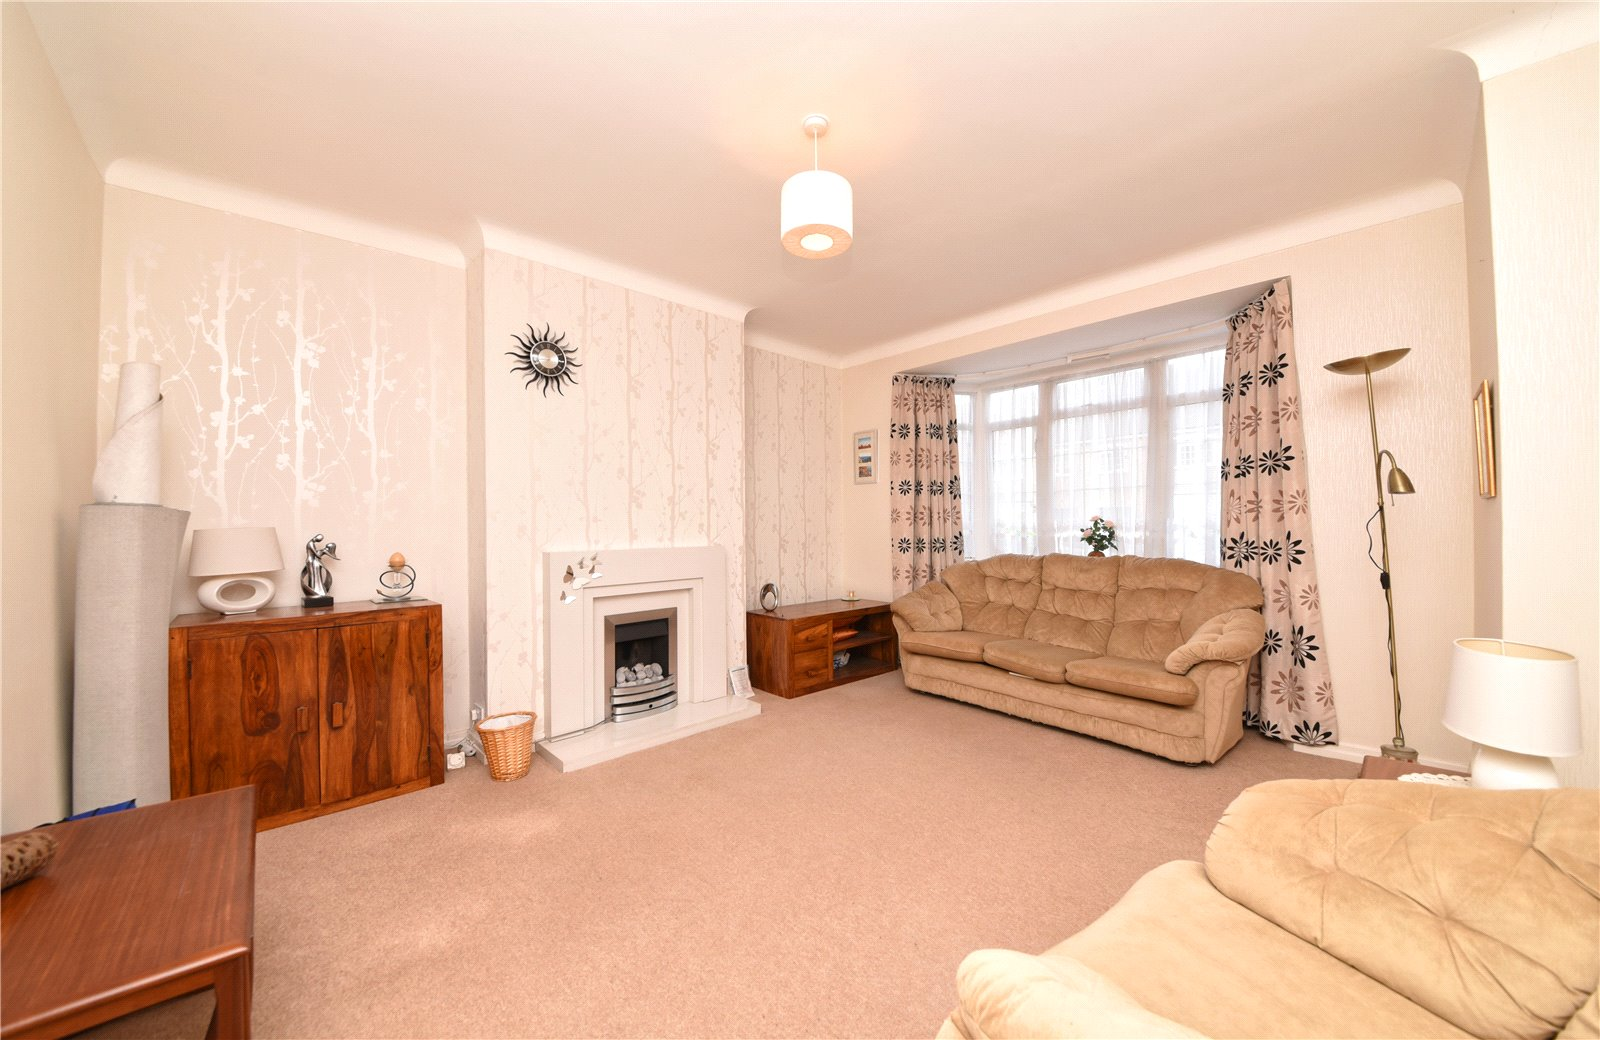 3 bed house for sale in London, N12 9ND 7